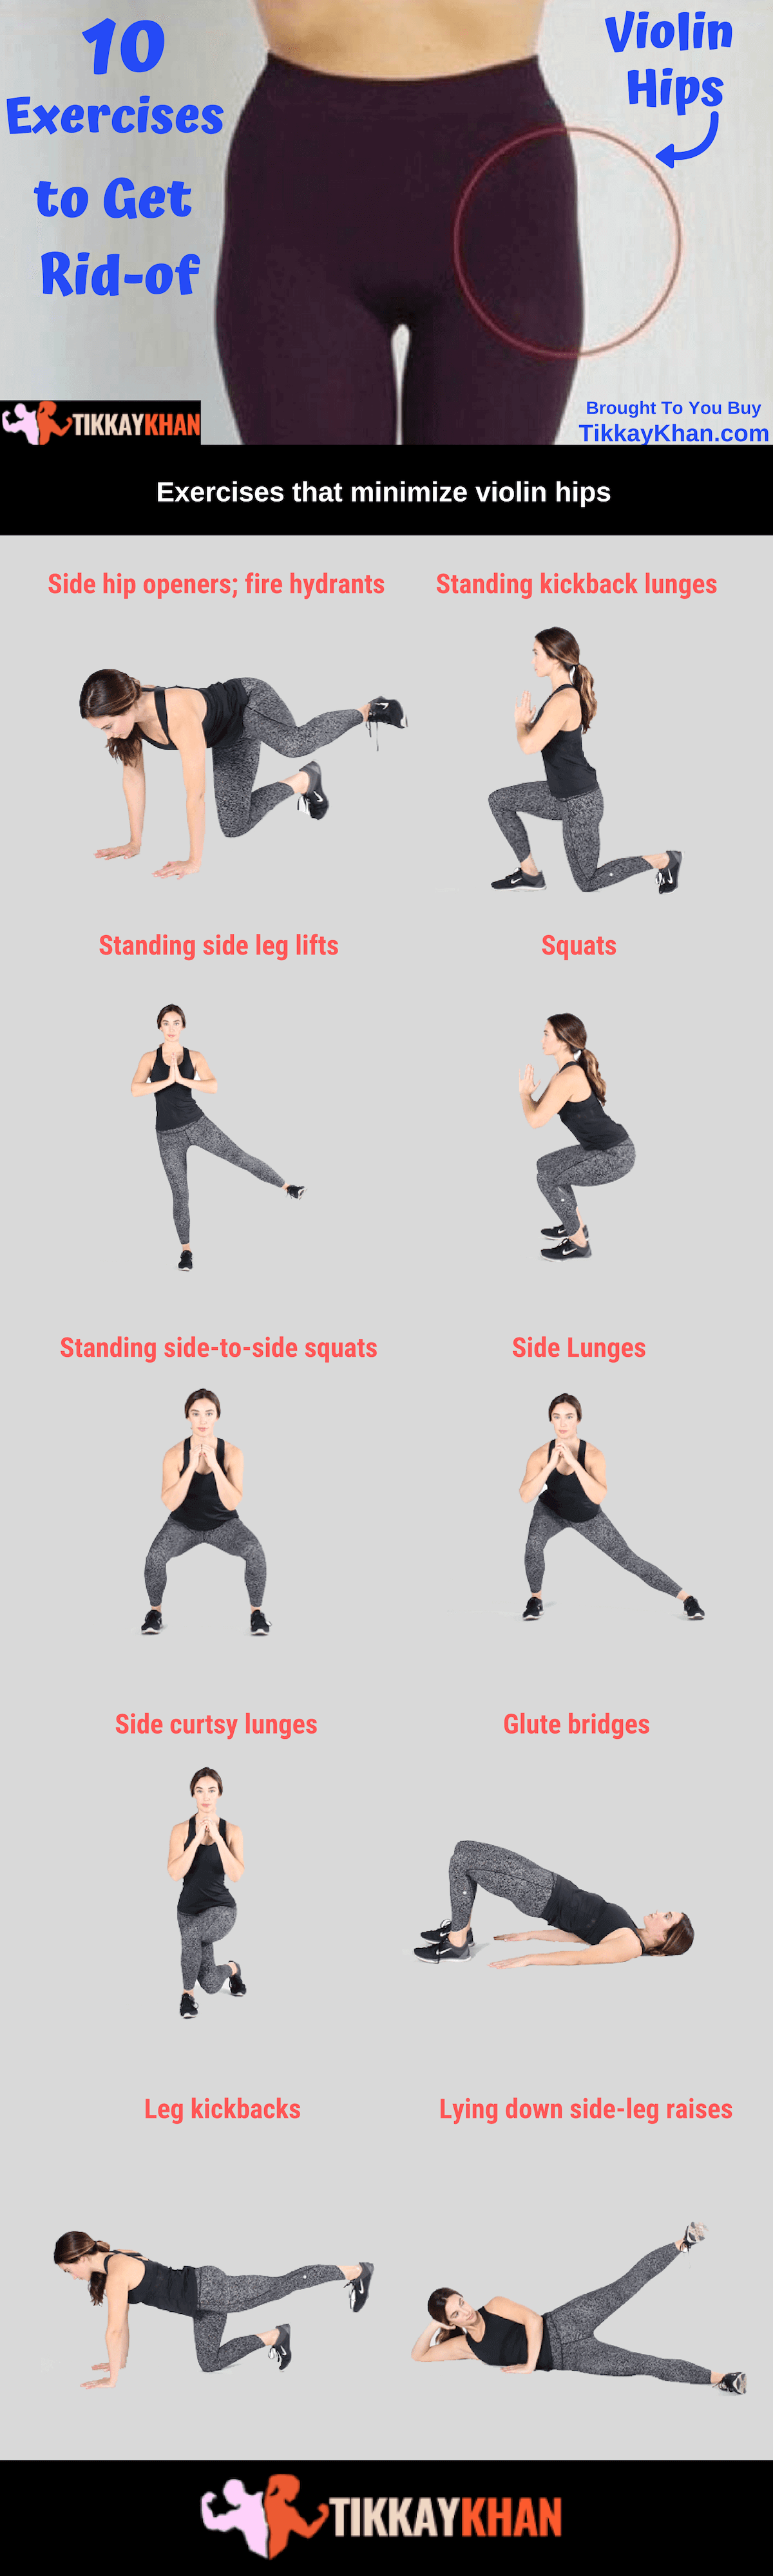 10 Exercises to Get Rid of Violin Hips